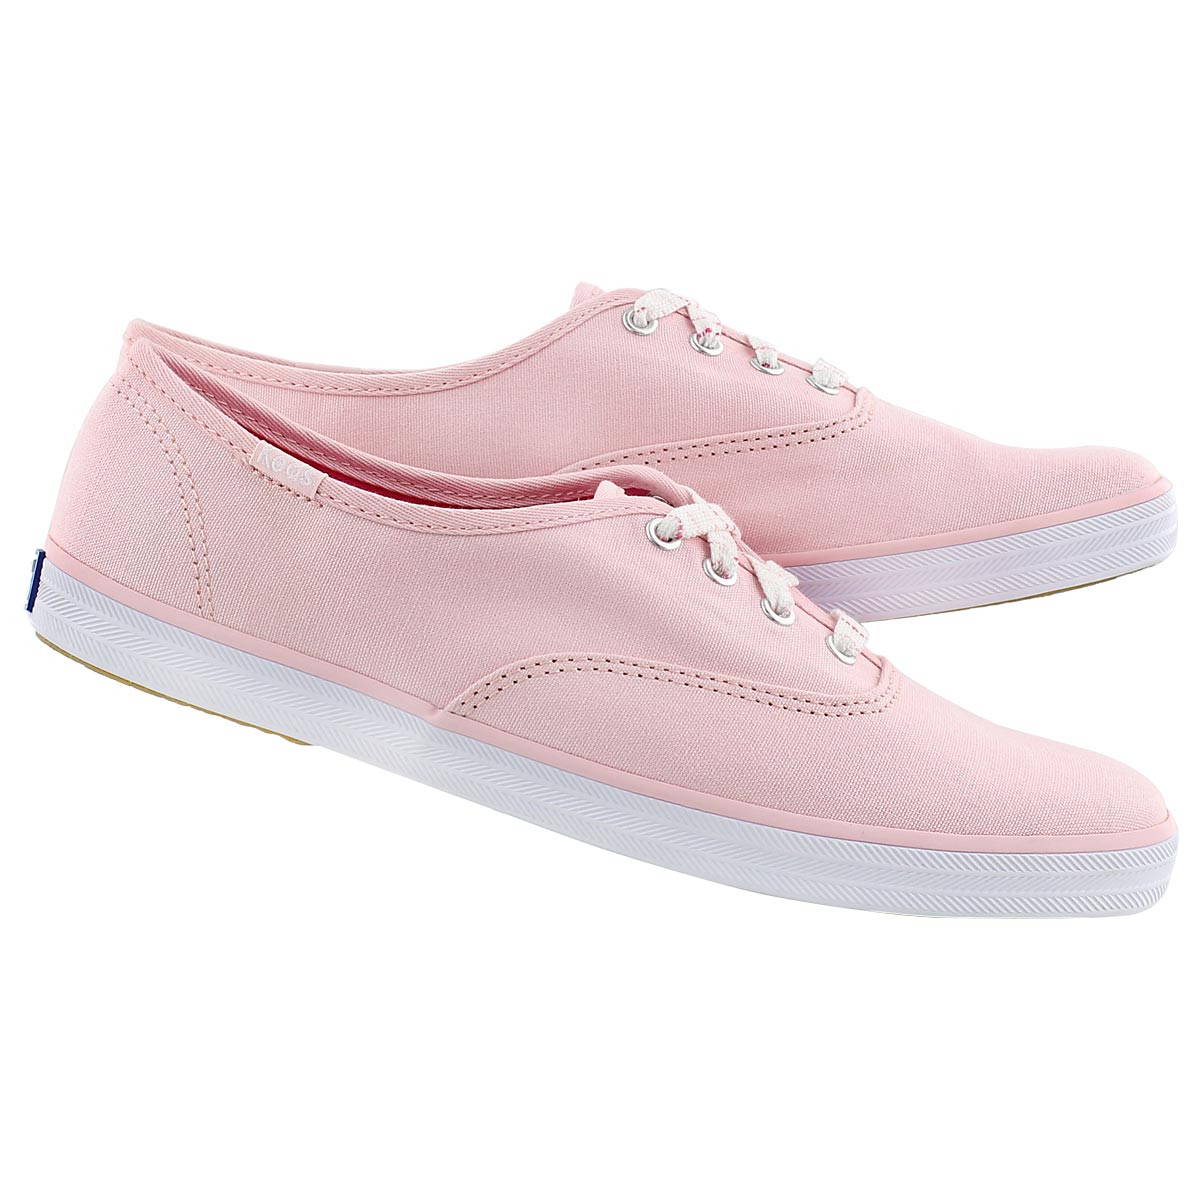 Lds Champion light pink canvas sneaker